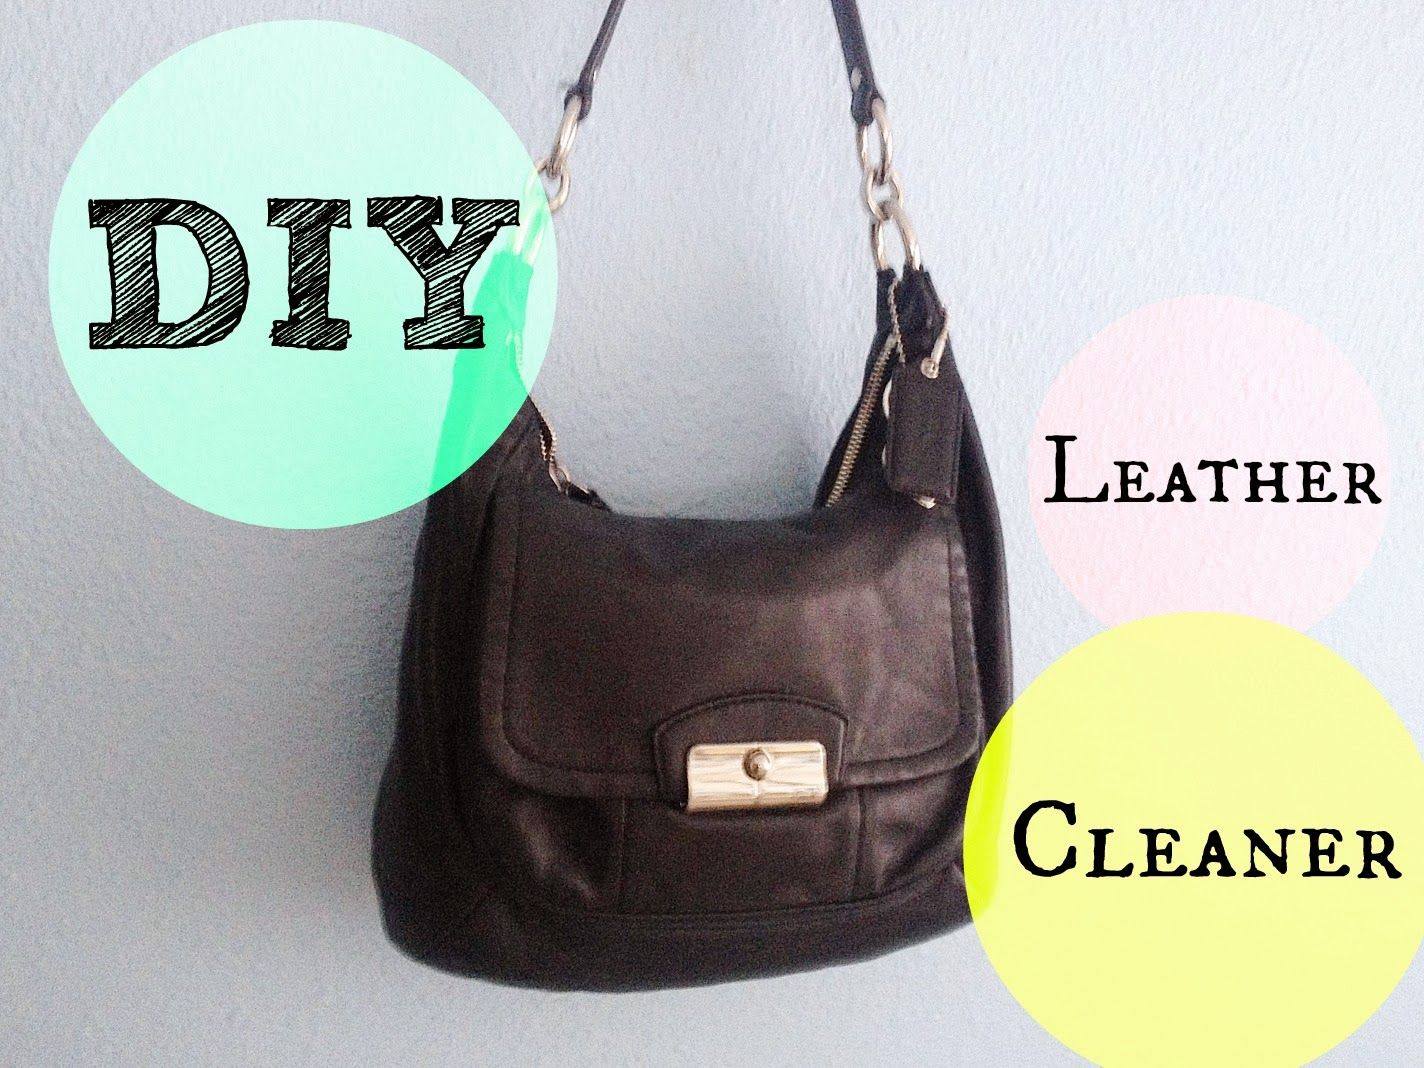 diy leather cleaner recipe   diy lifestyle tips   pinterest